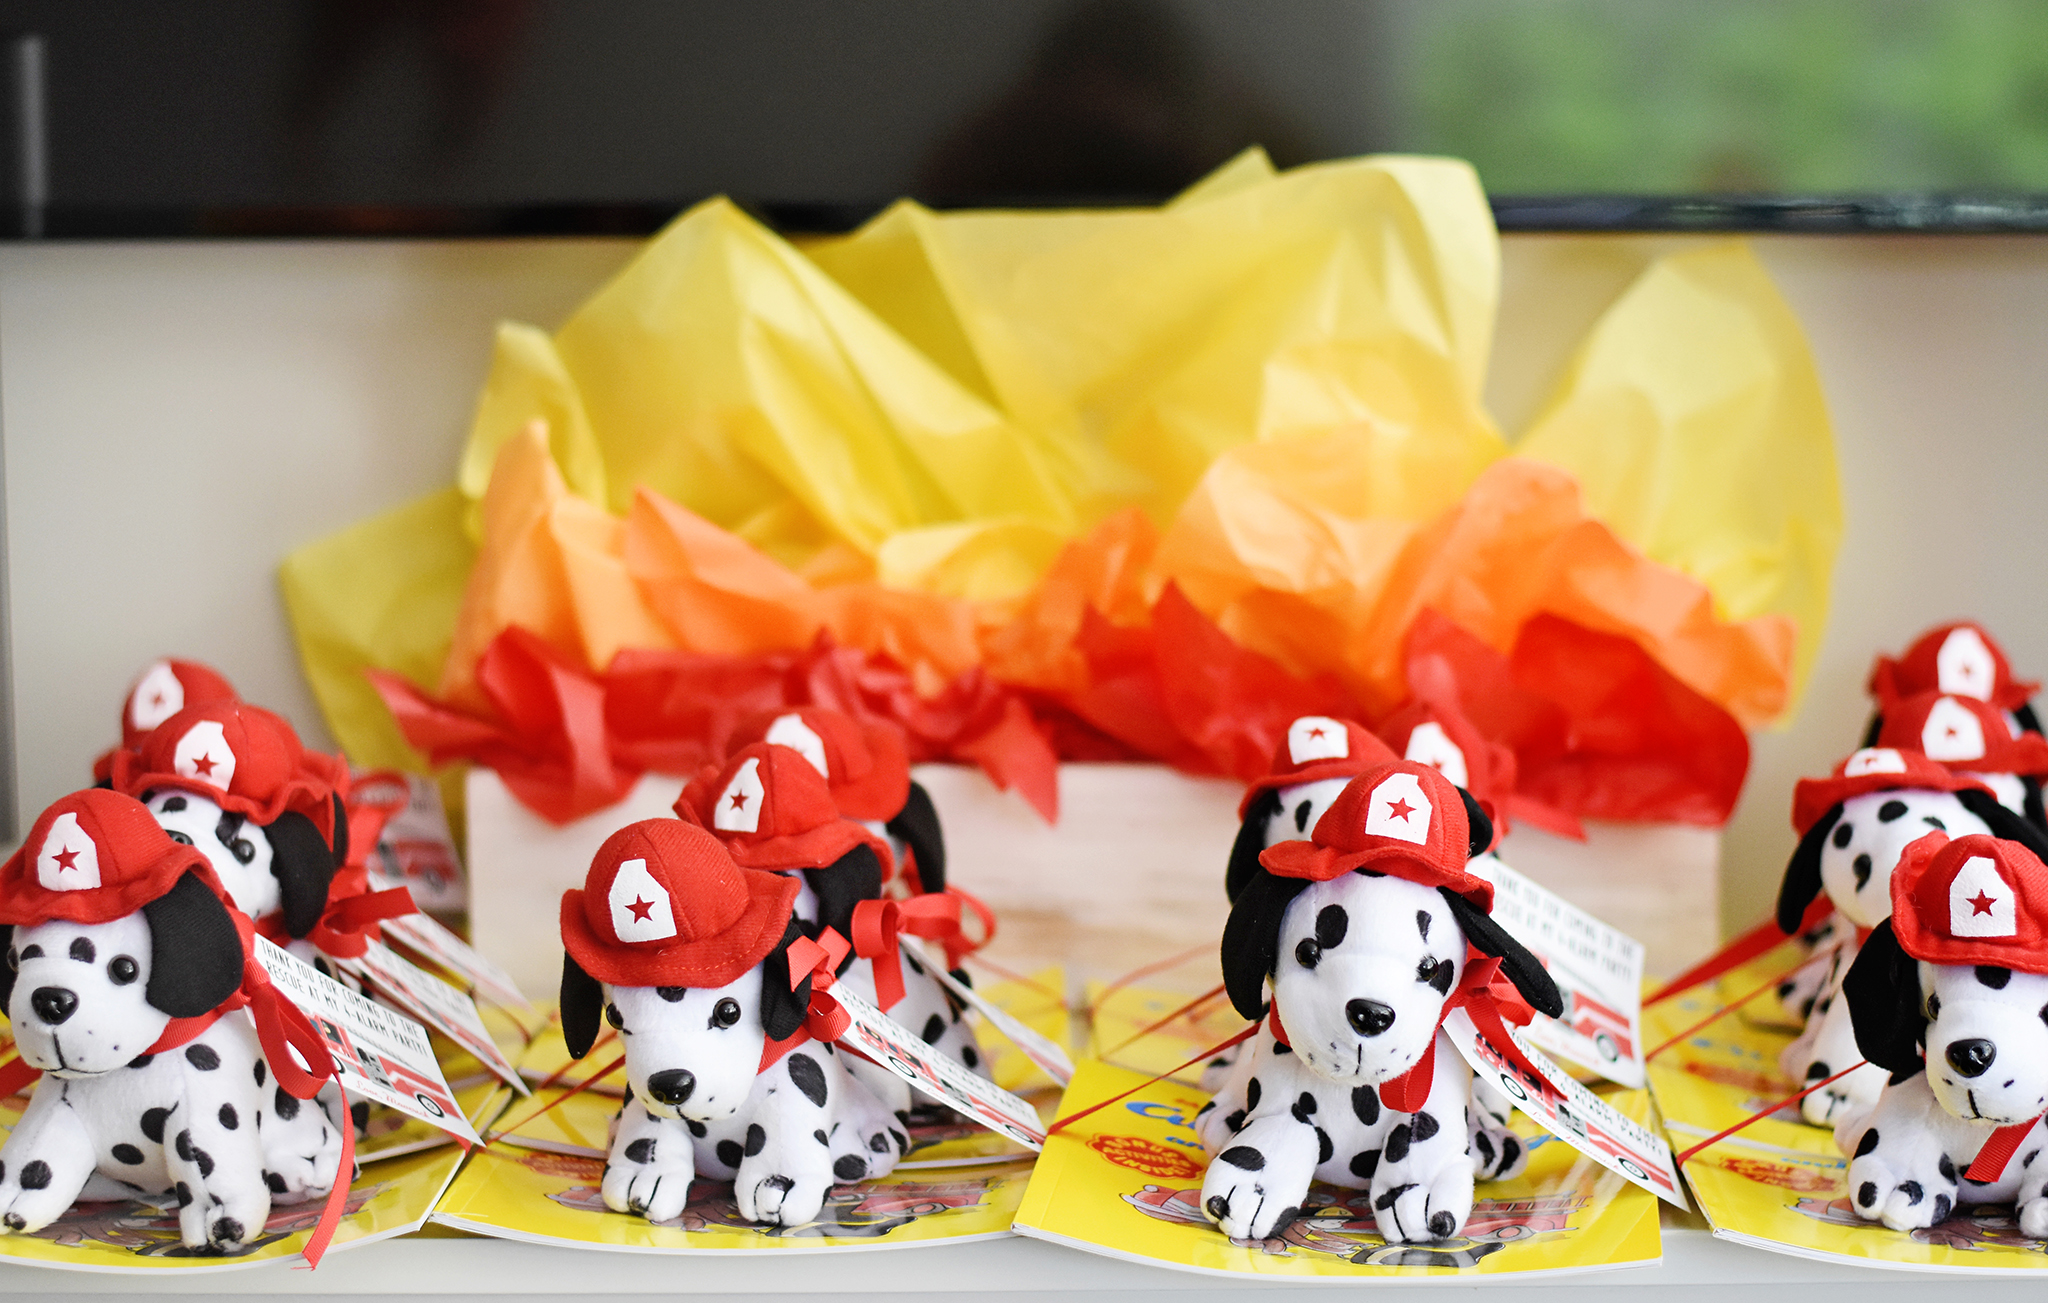 Fire Truck Party Favors - Dalmatian Puppies and Books!